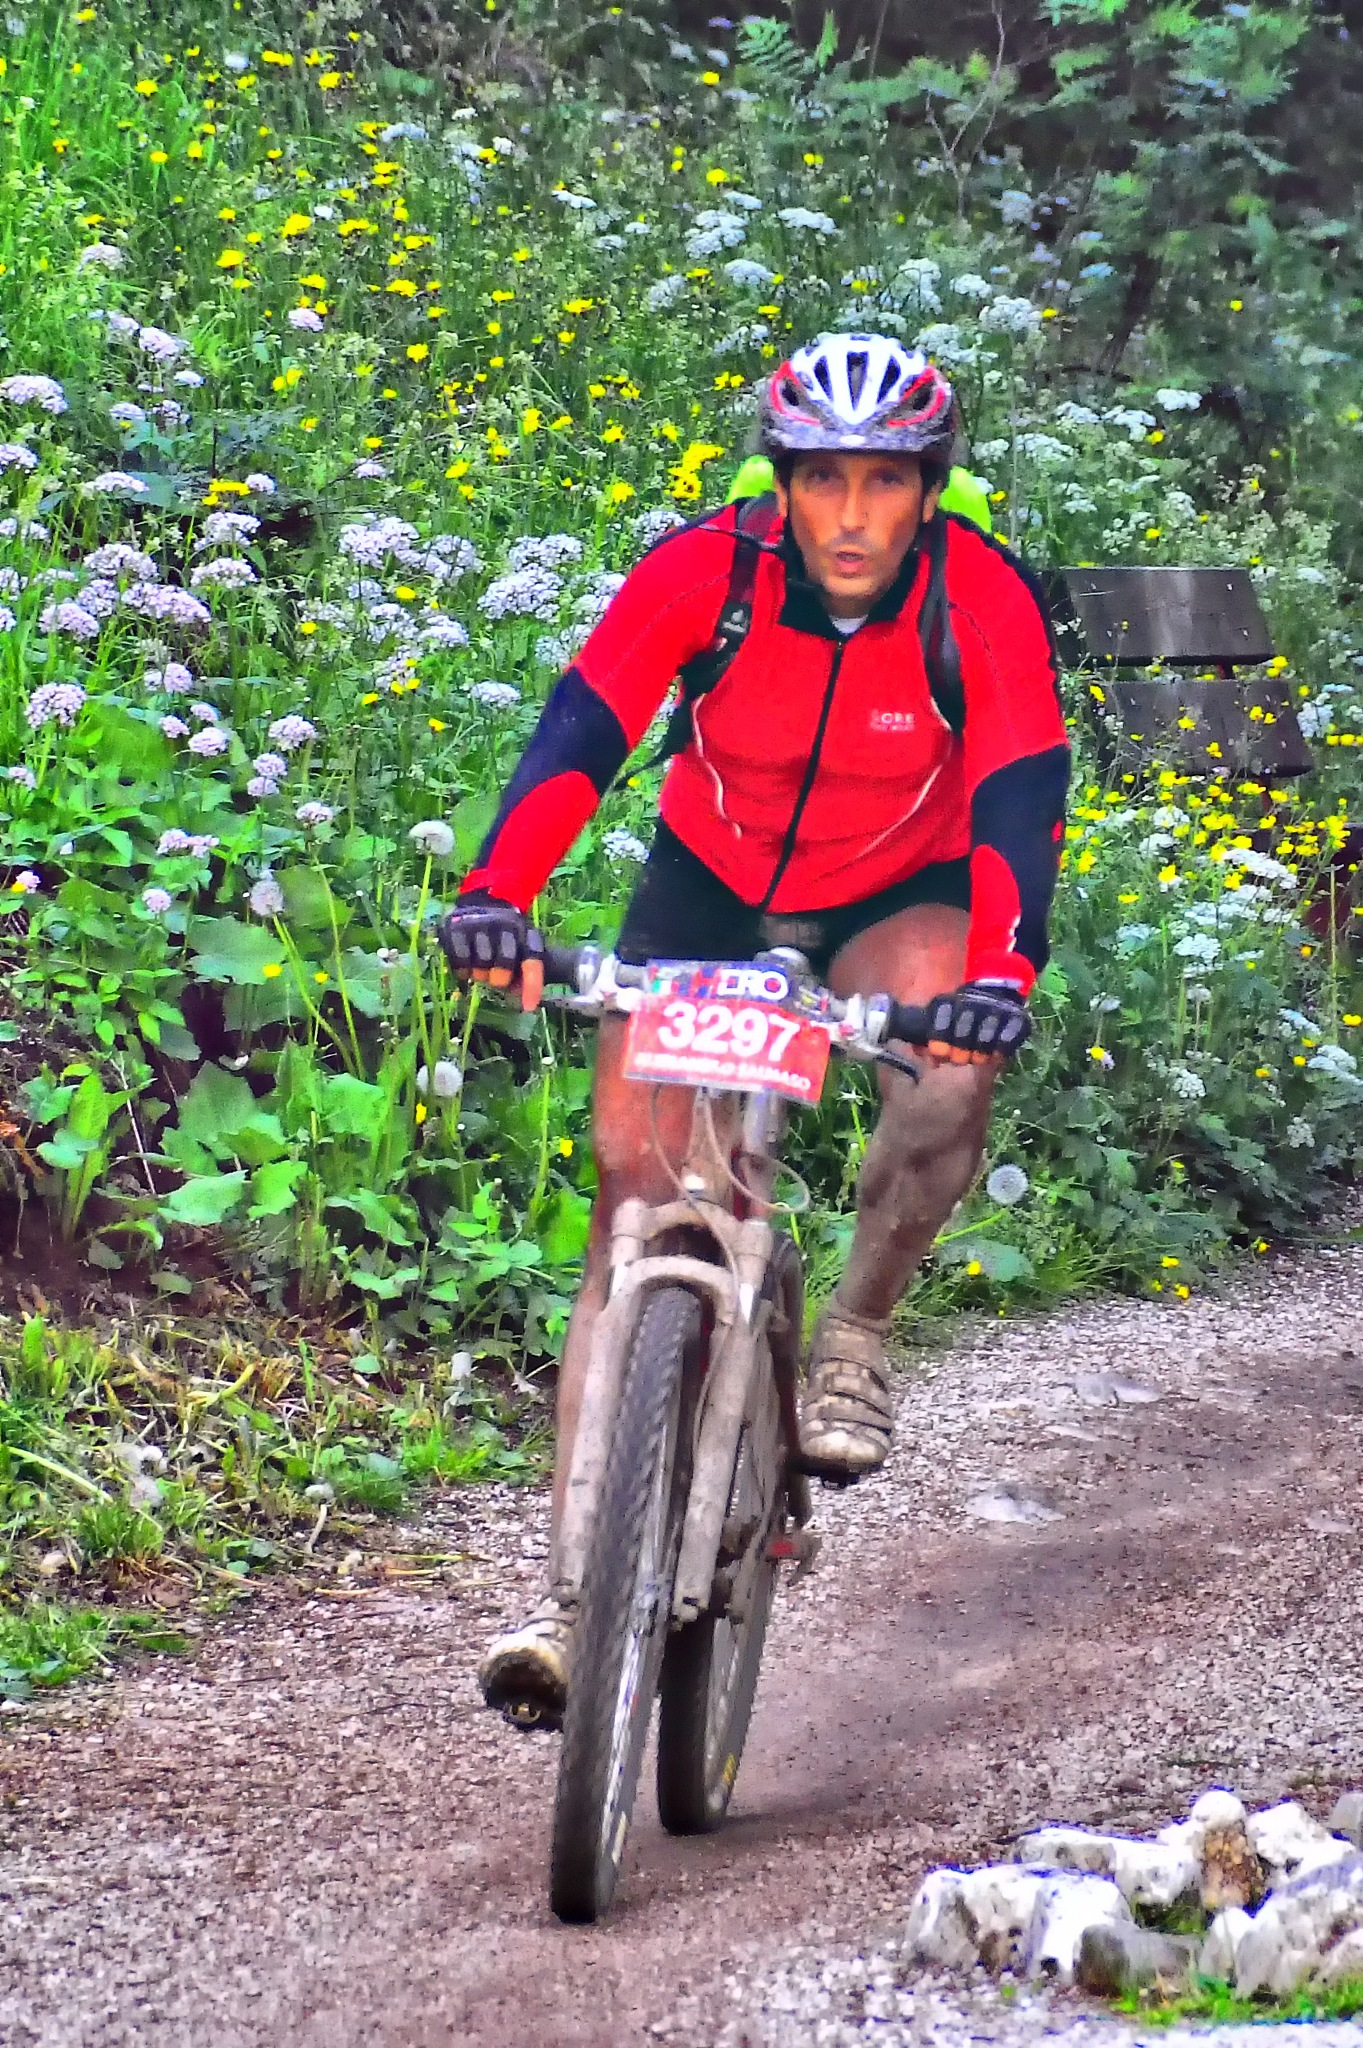 mountainbike competition by ernesto amato